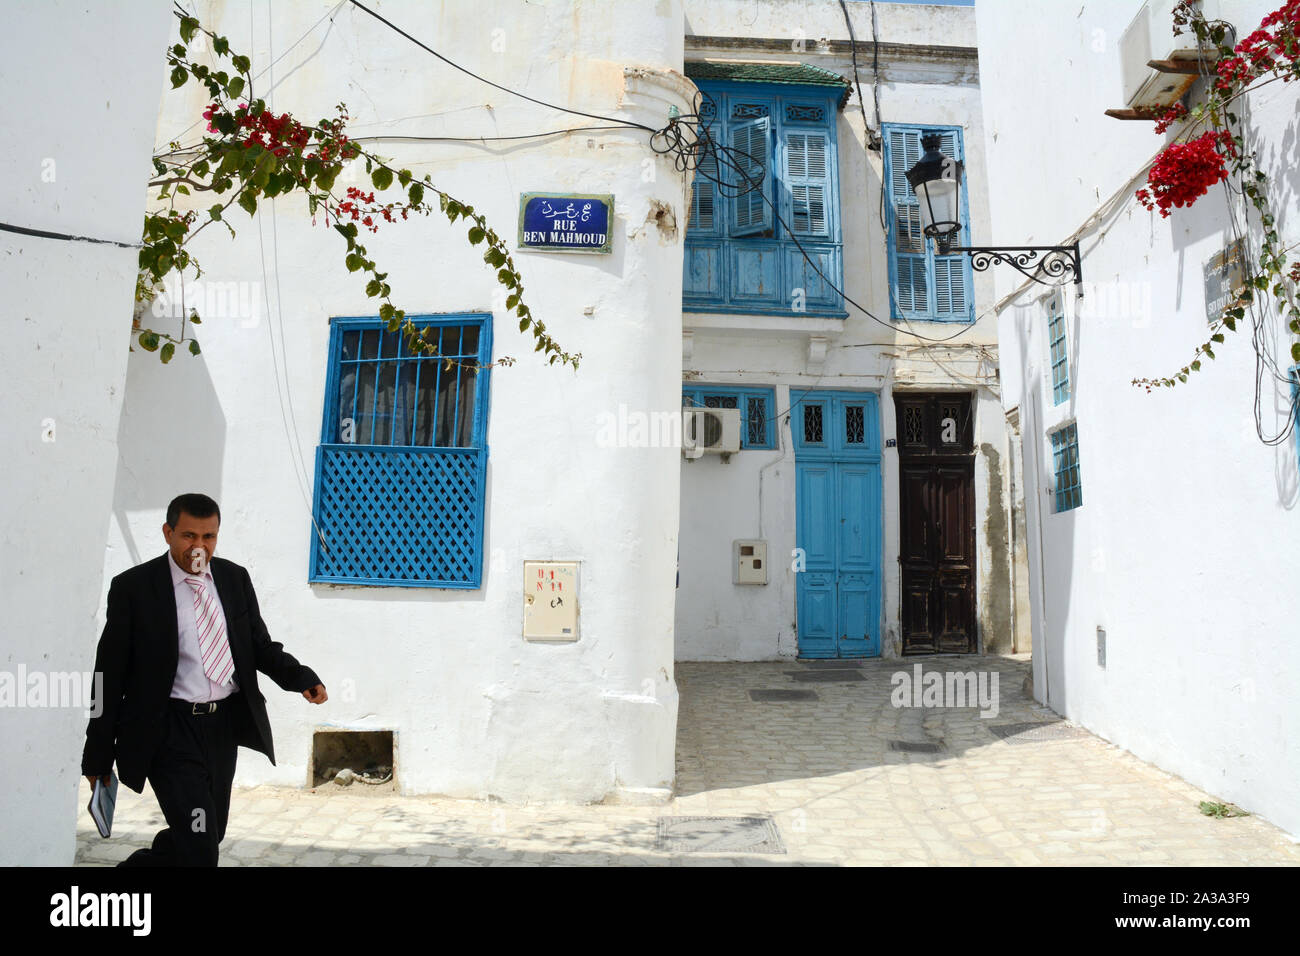 A middle-aged Tunisian man in a business suit walking through the pedestrian streets of the Hafsia quarter of the medina (old city) of Tunis, Tunisia. Stock Photo